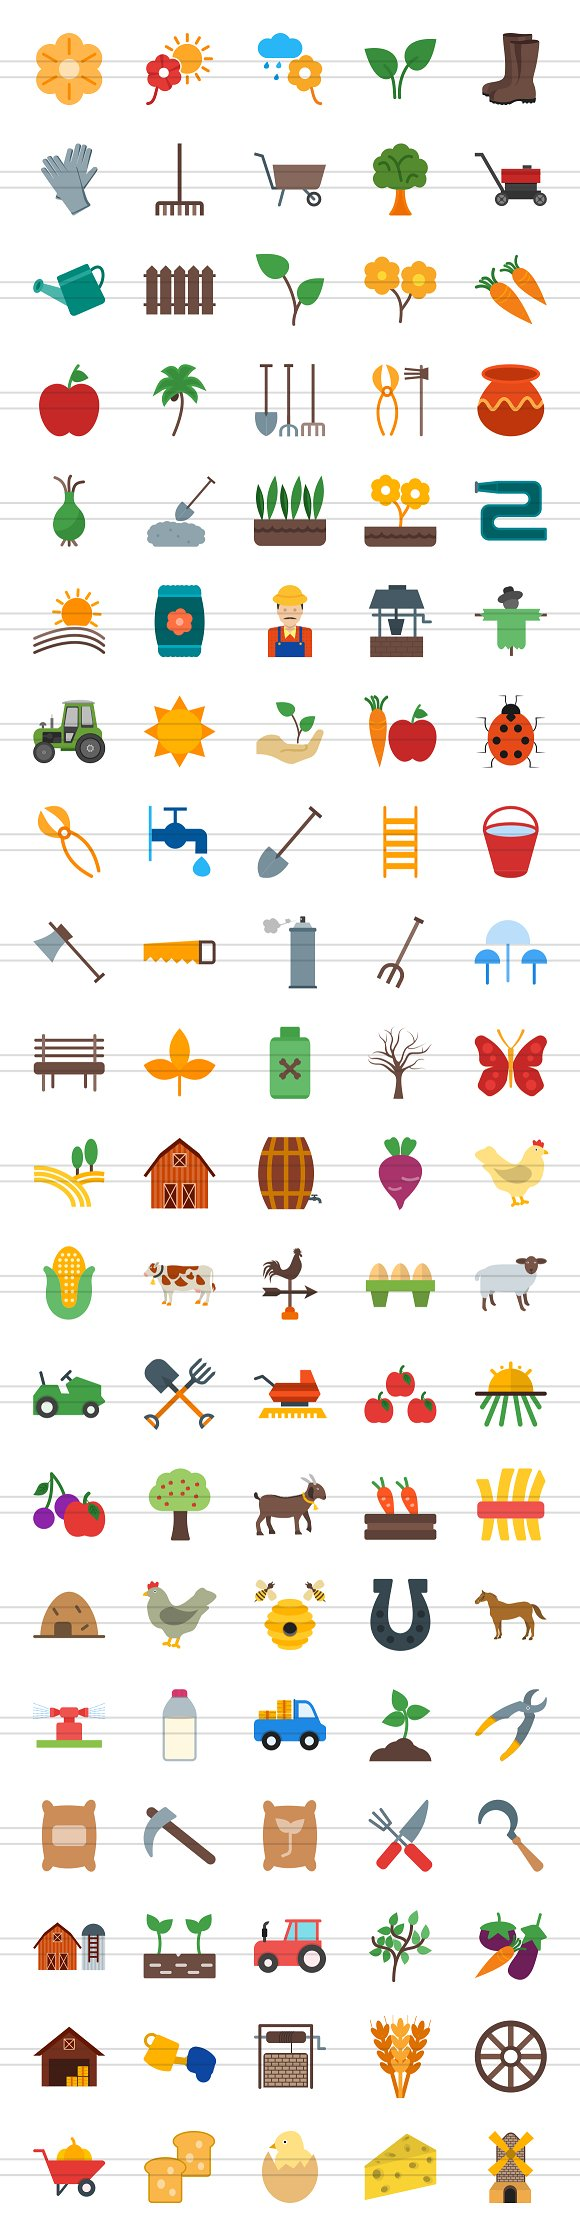 100 Farm & Gardening Flat Icons in Graphics - product preview 1